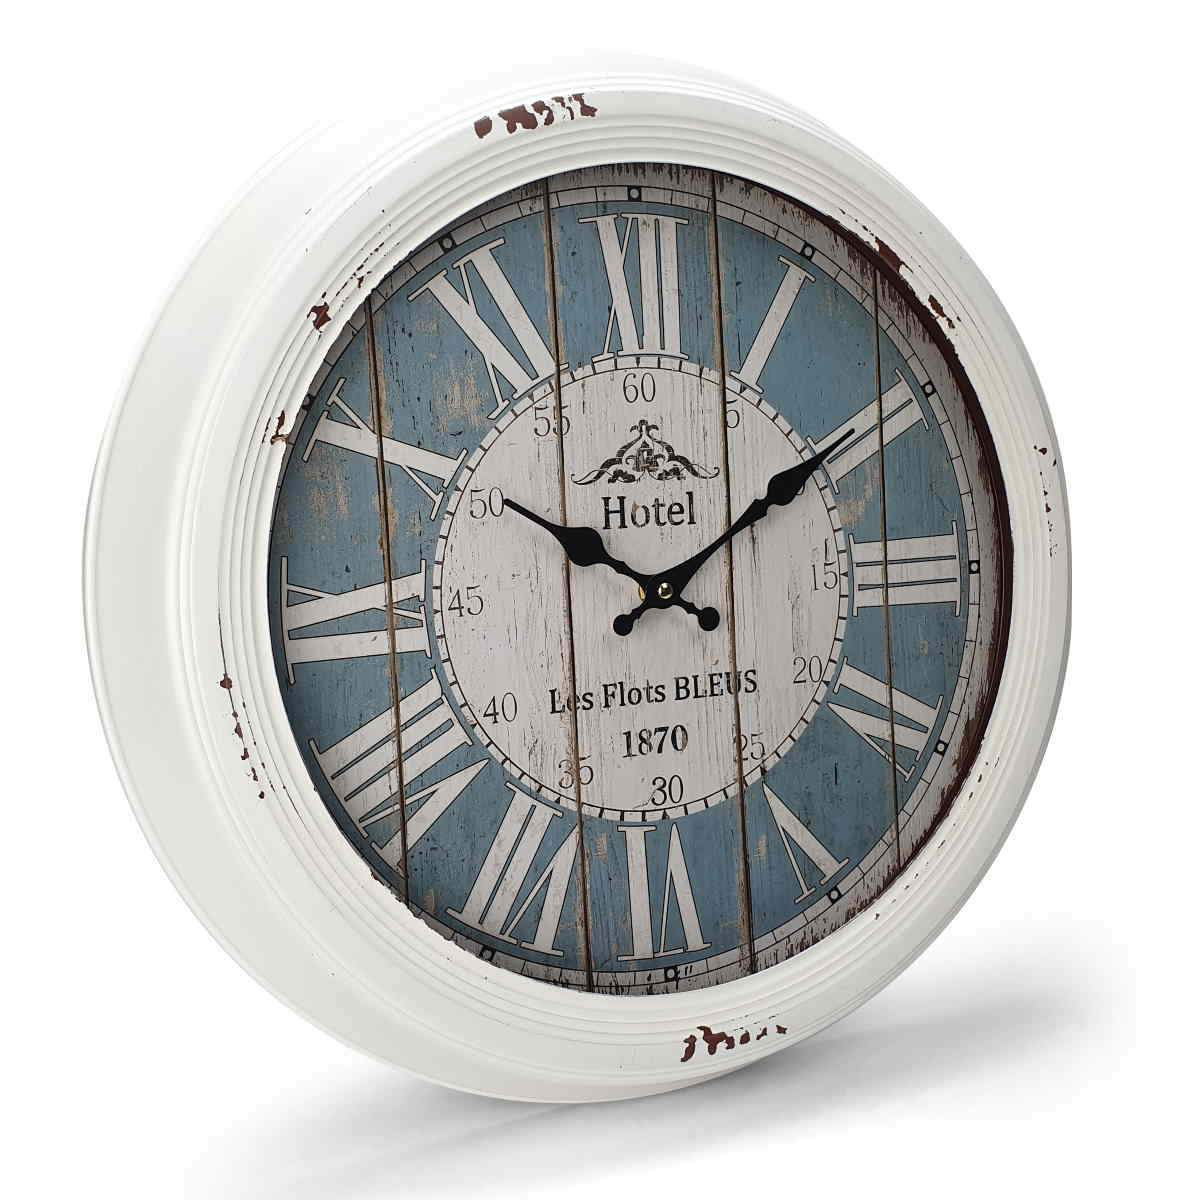 Victory Hotel Les Flots Bleus Vintage Metal Wall Clock White 47cm CHH 553 1